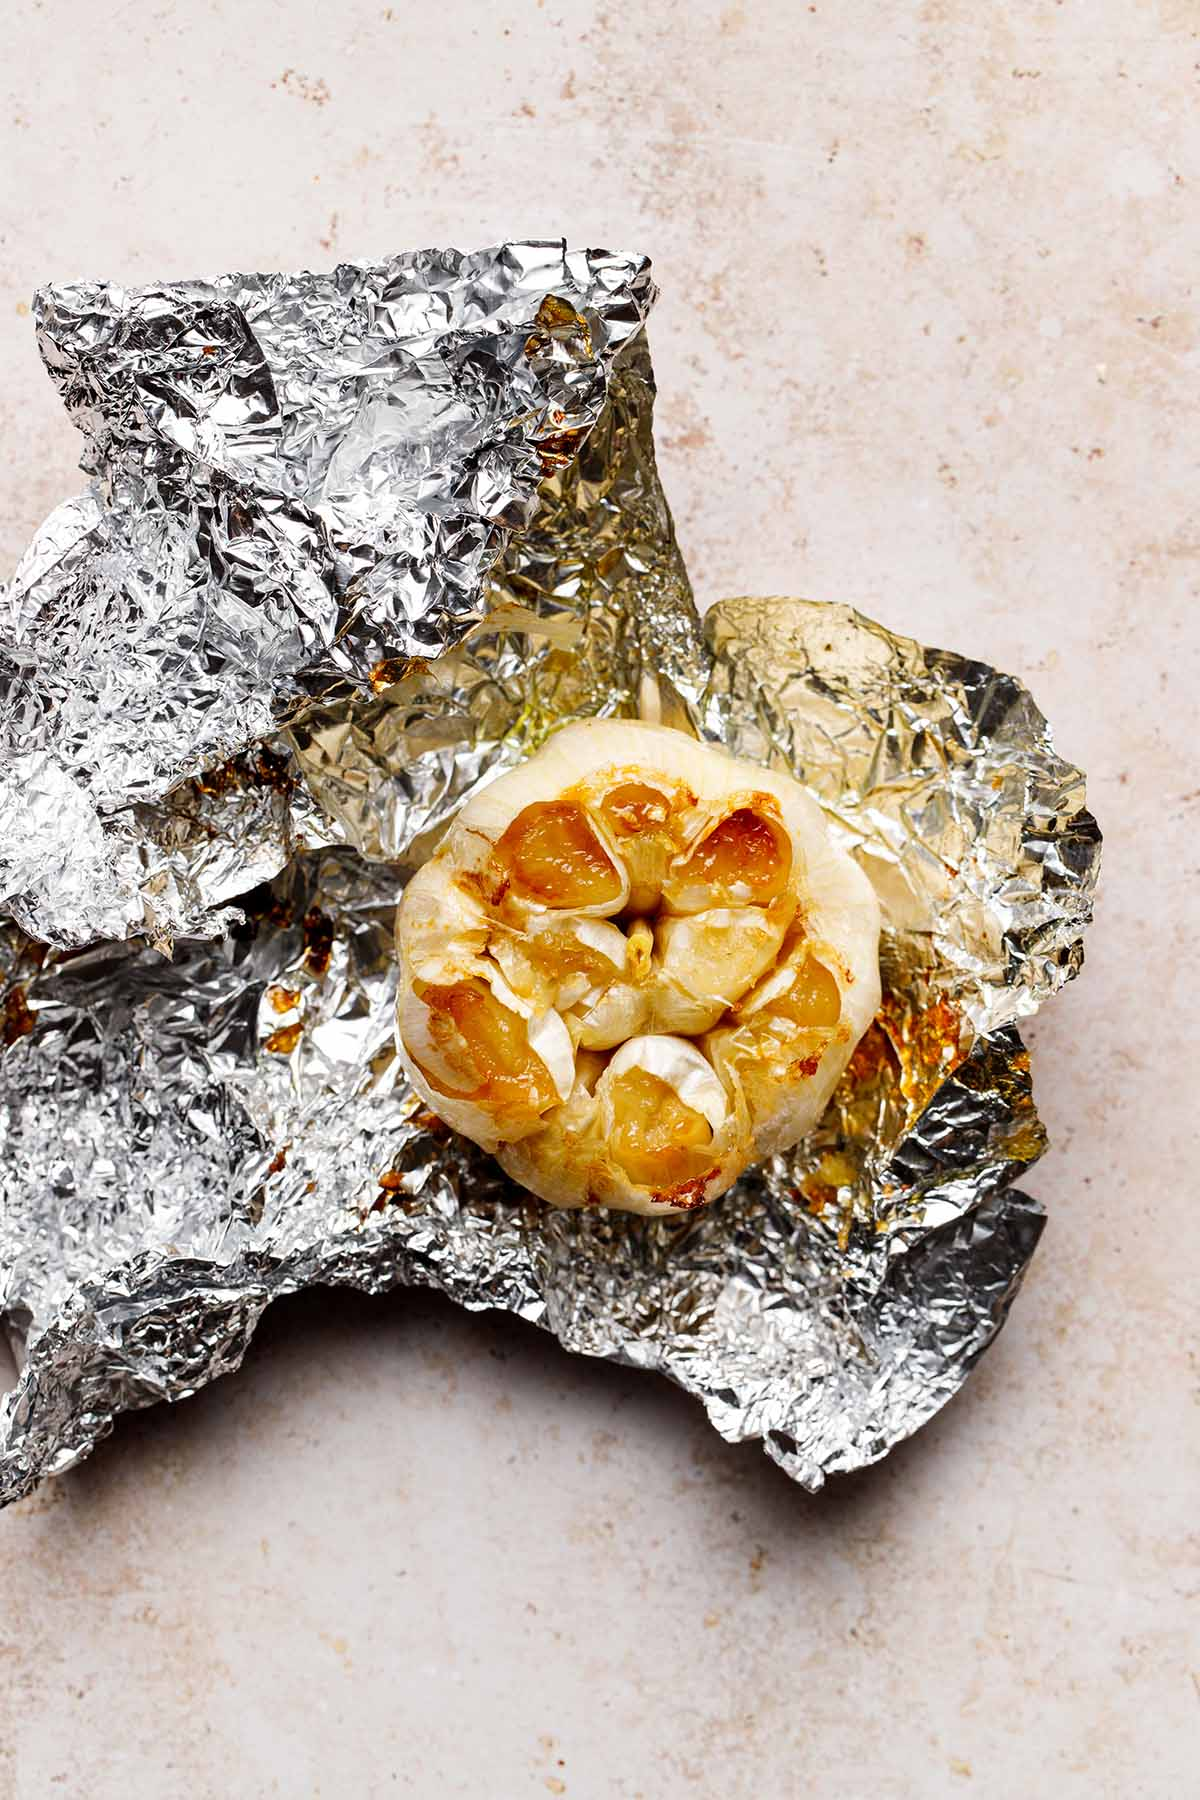 A bulb of air fryer roasted garlic sitting on the piece of aluminum foil it was cooked in.